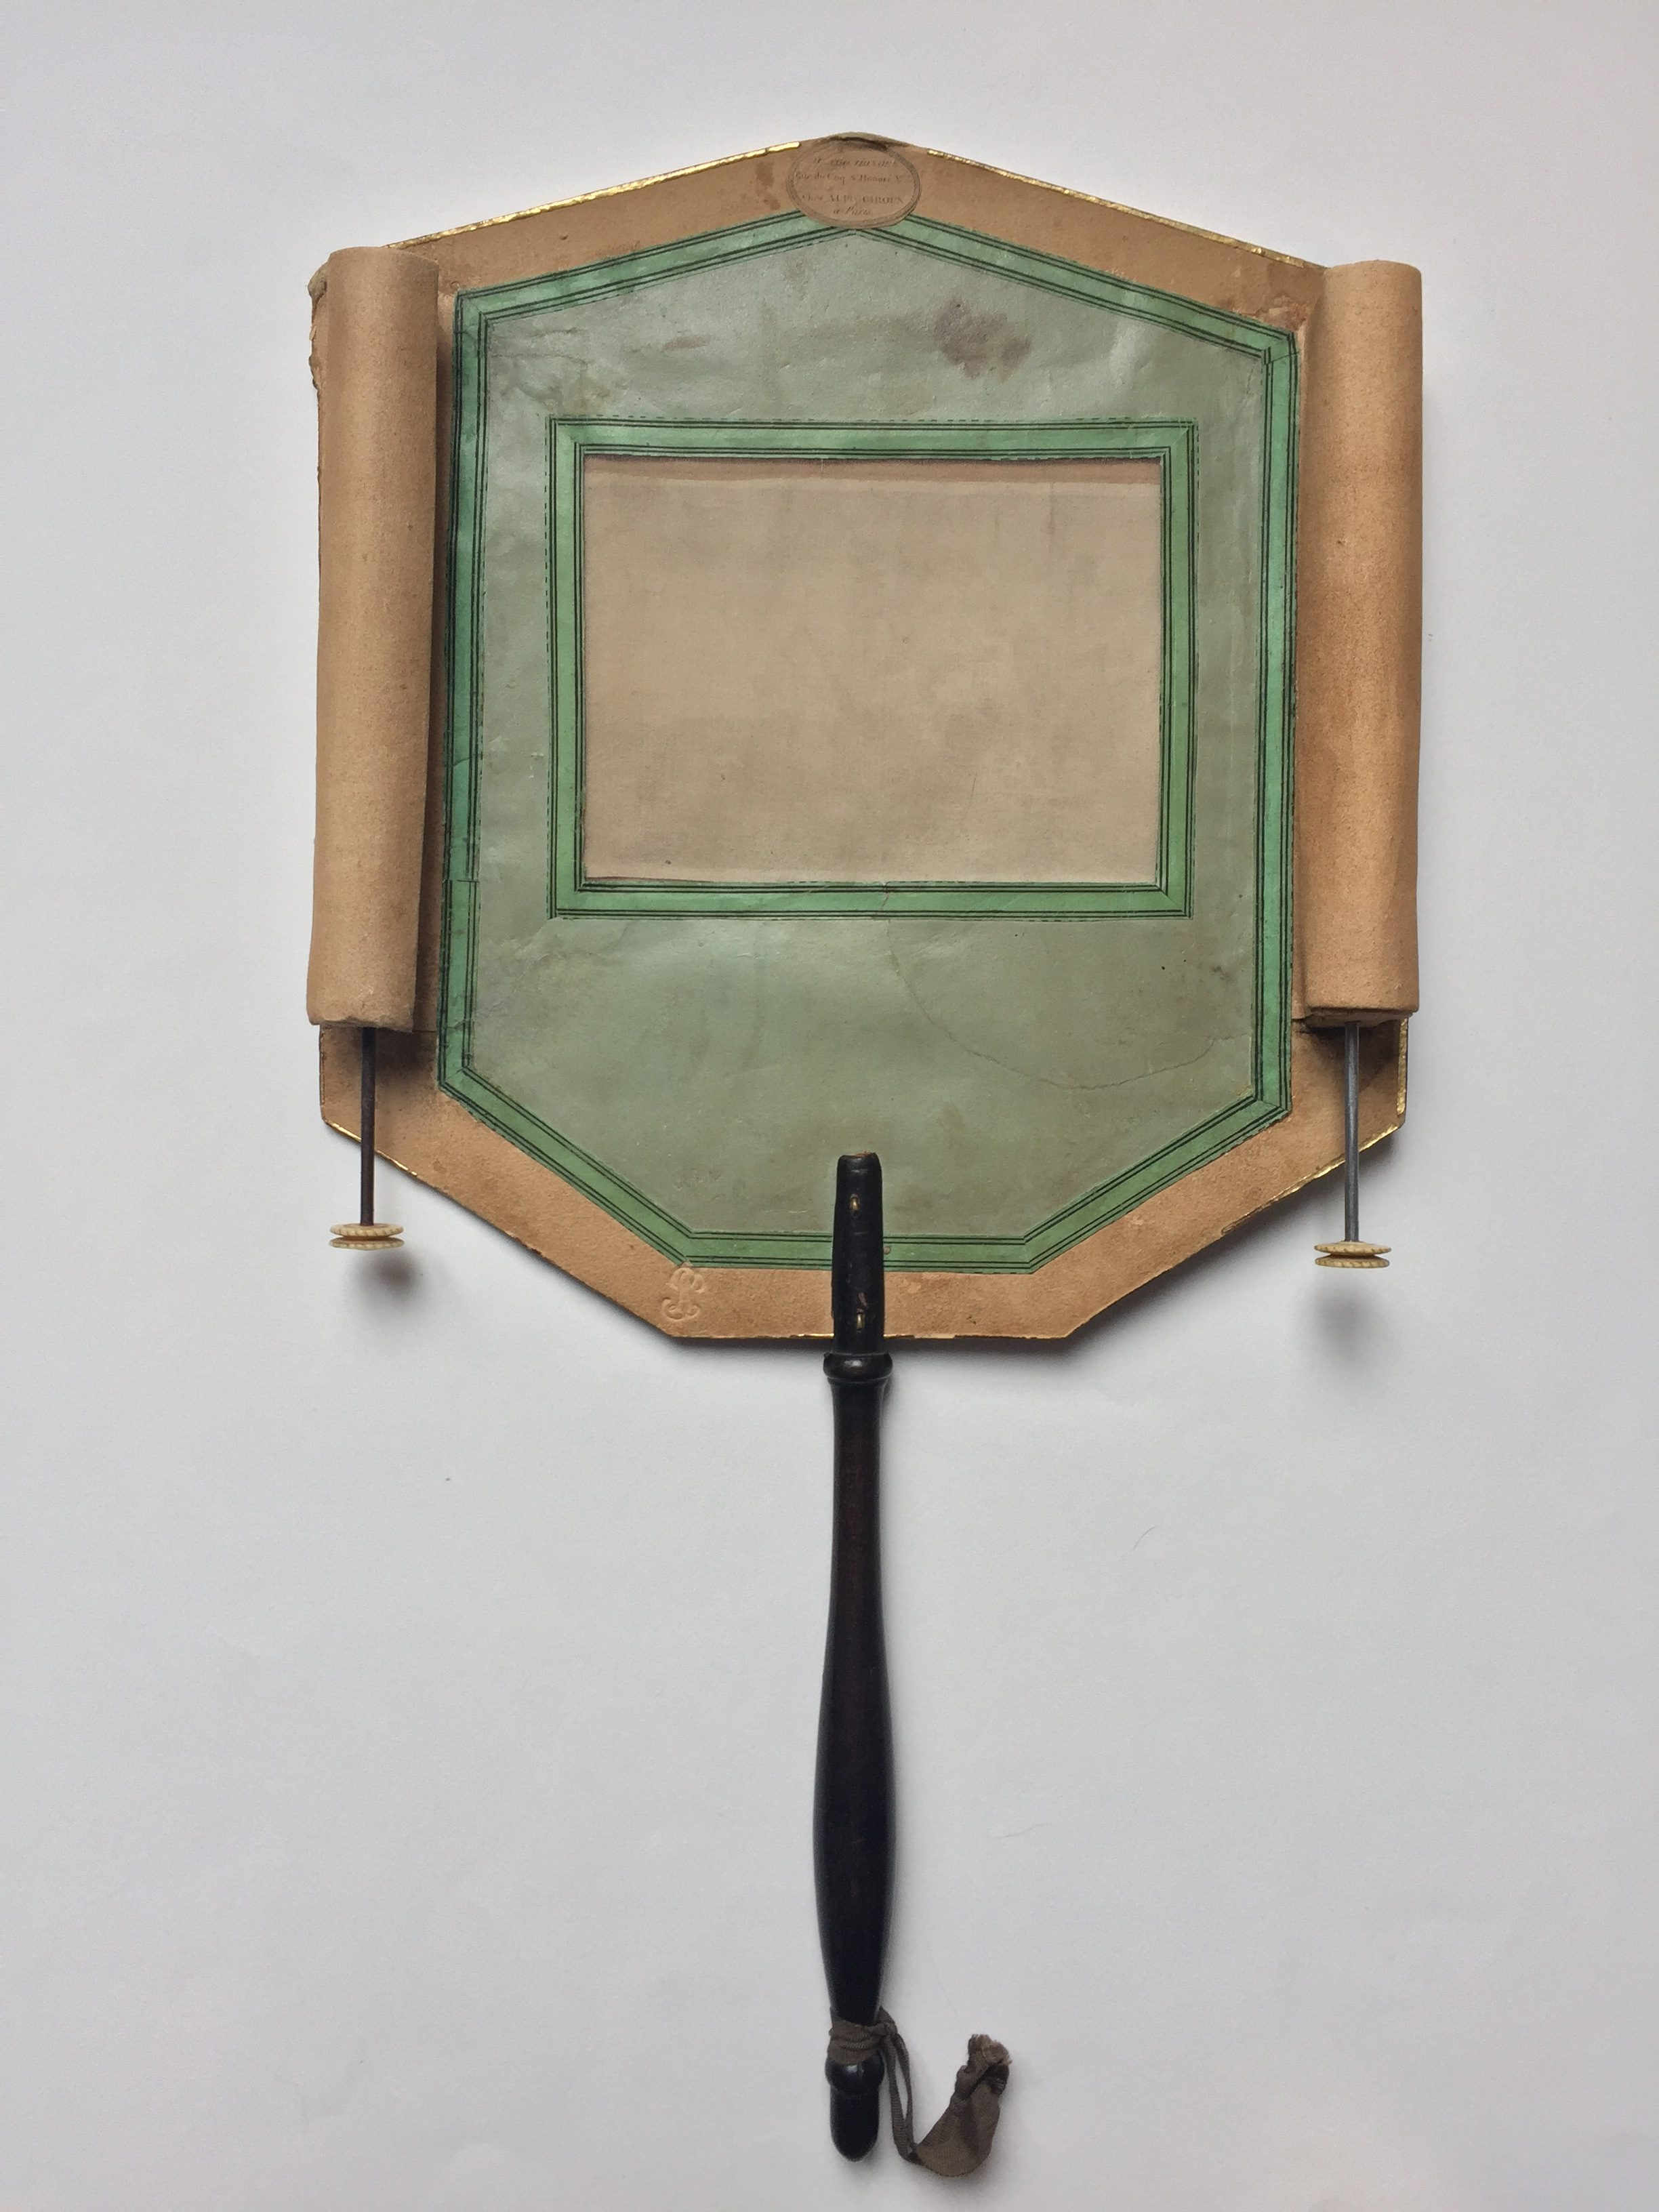 System screen fan conservation